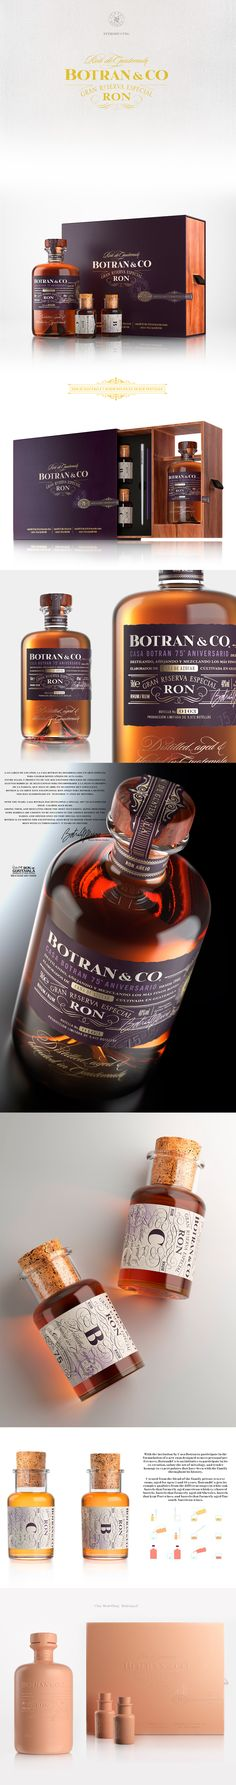 CGI product visualisation and animation film for Botran & Co 75th Anniversary Edition Rum